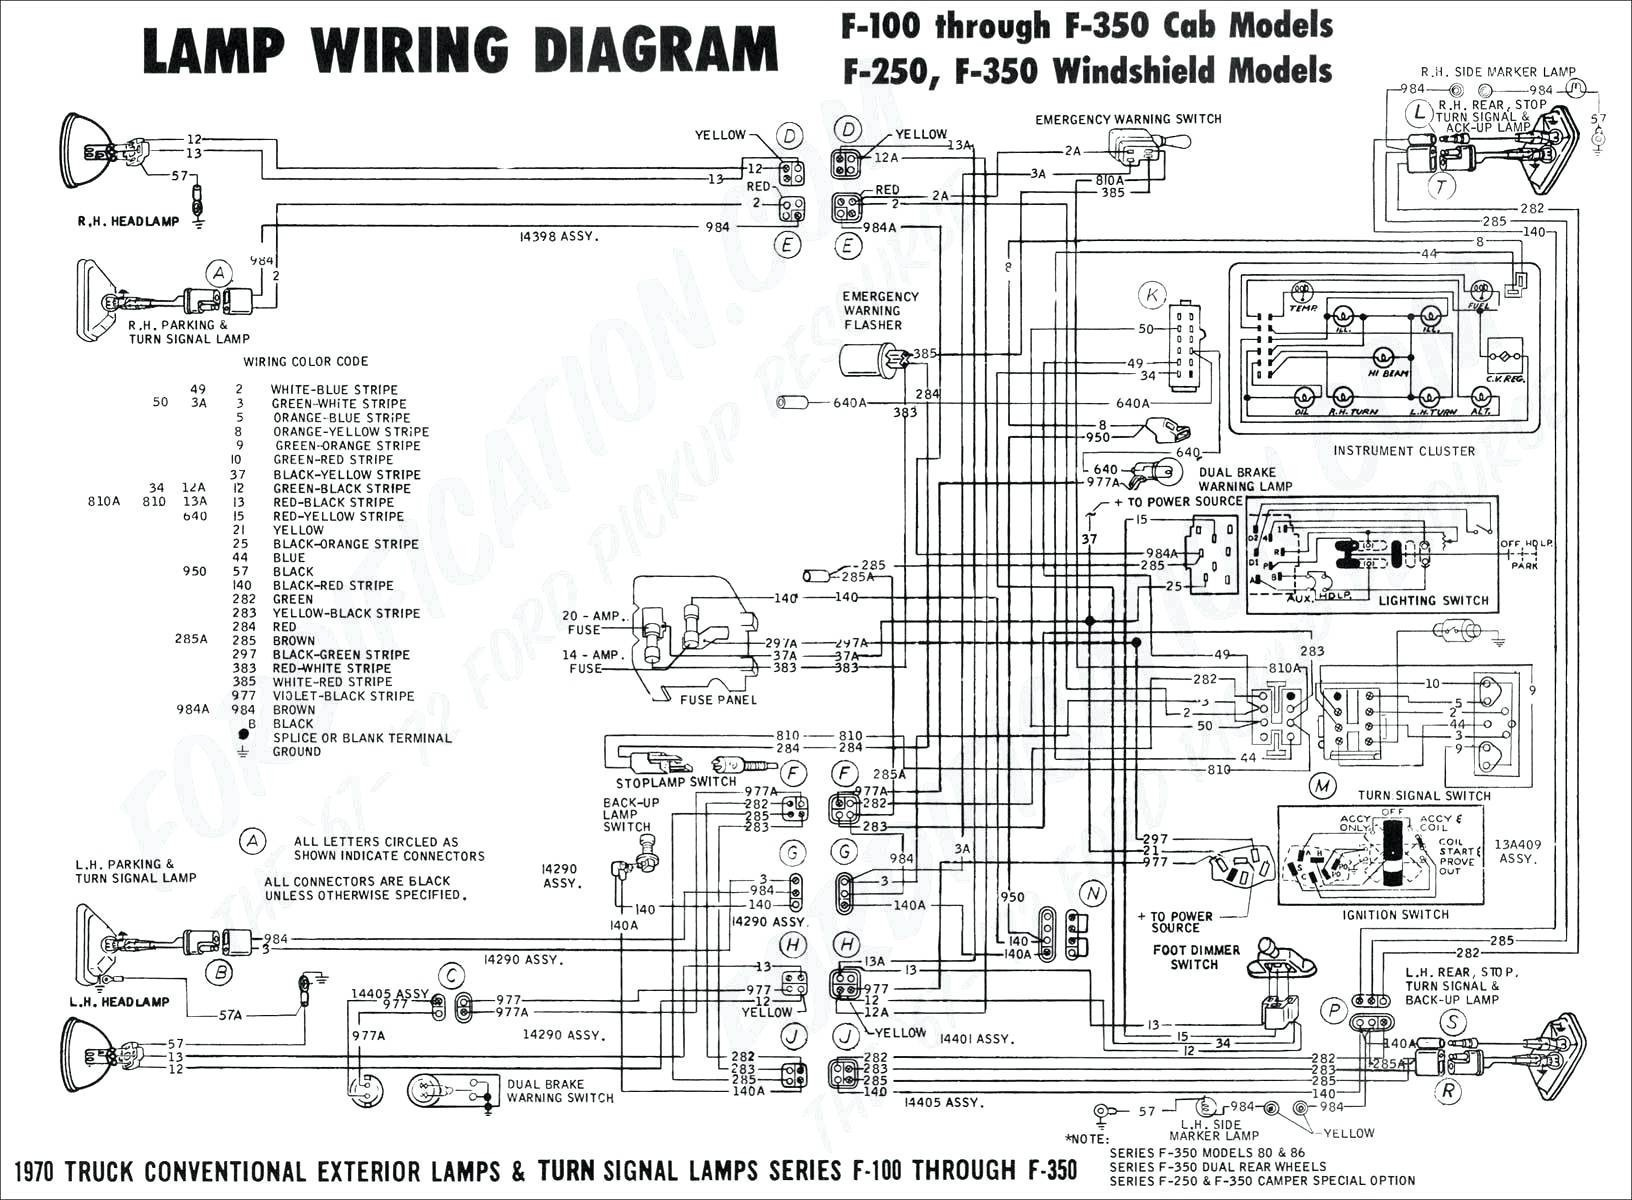 96 Mustang Engine Diagram 1998 ford Wiring Diagrams Wiring Diagram toolbox Of 96 Mustang Engine Diagram